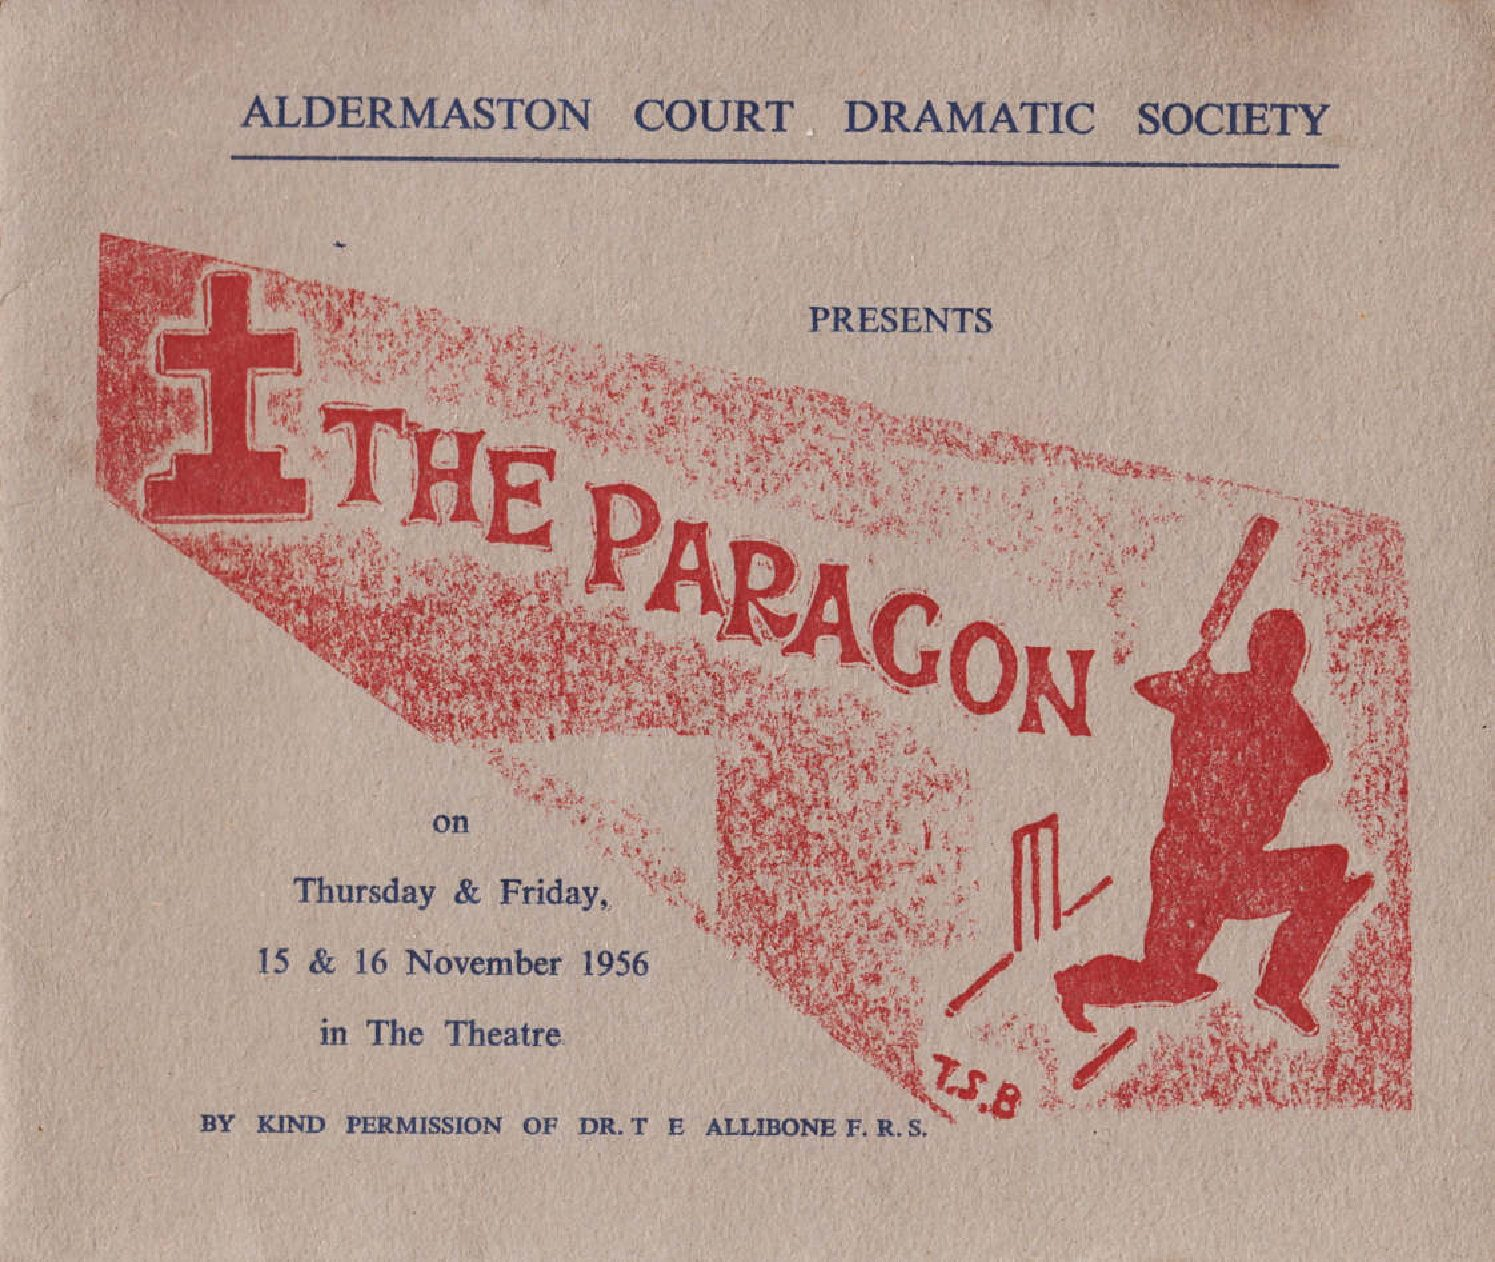 Aldermaston Court Drama Society